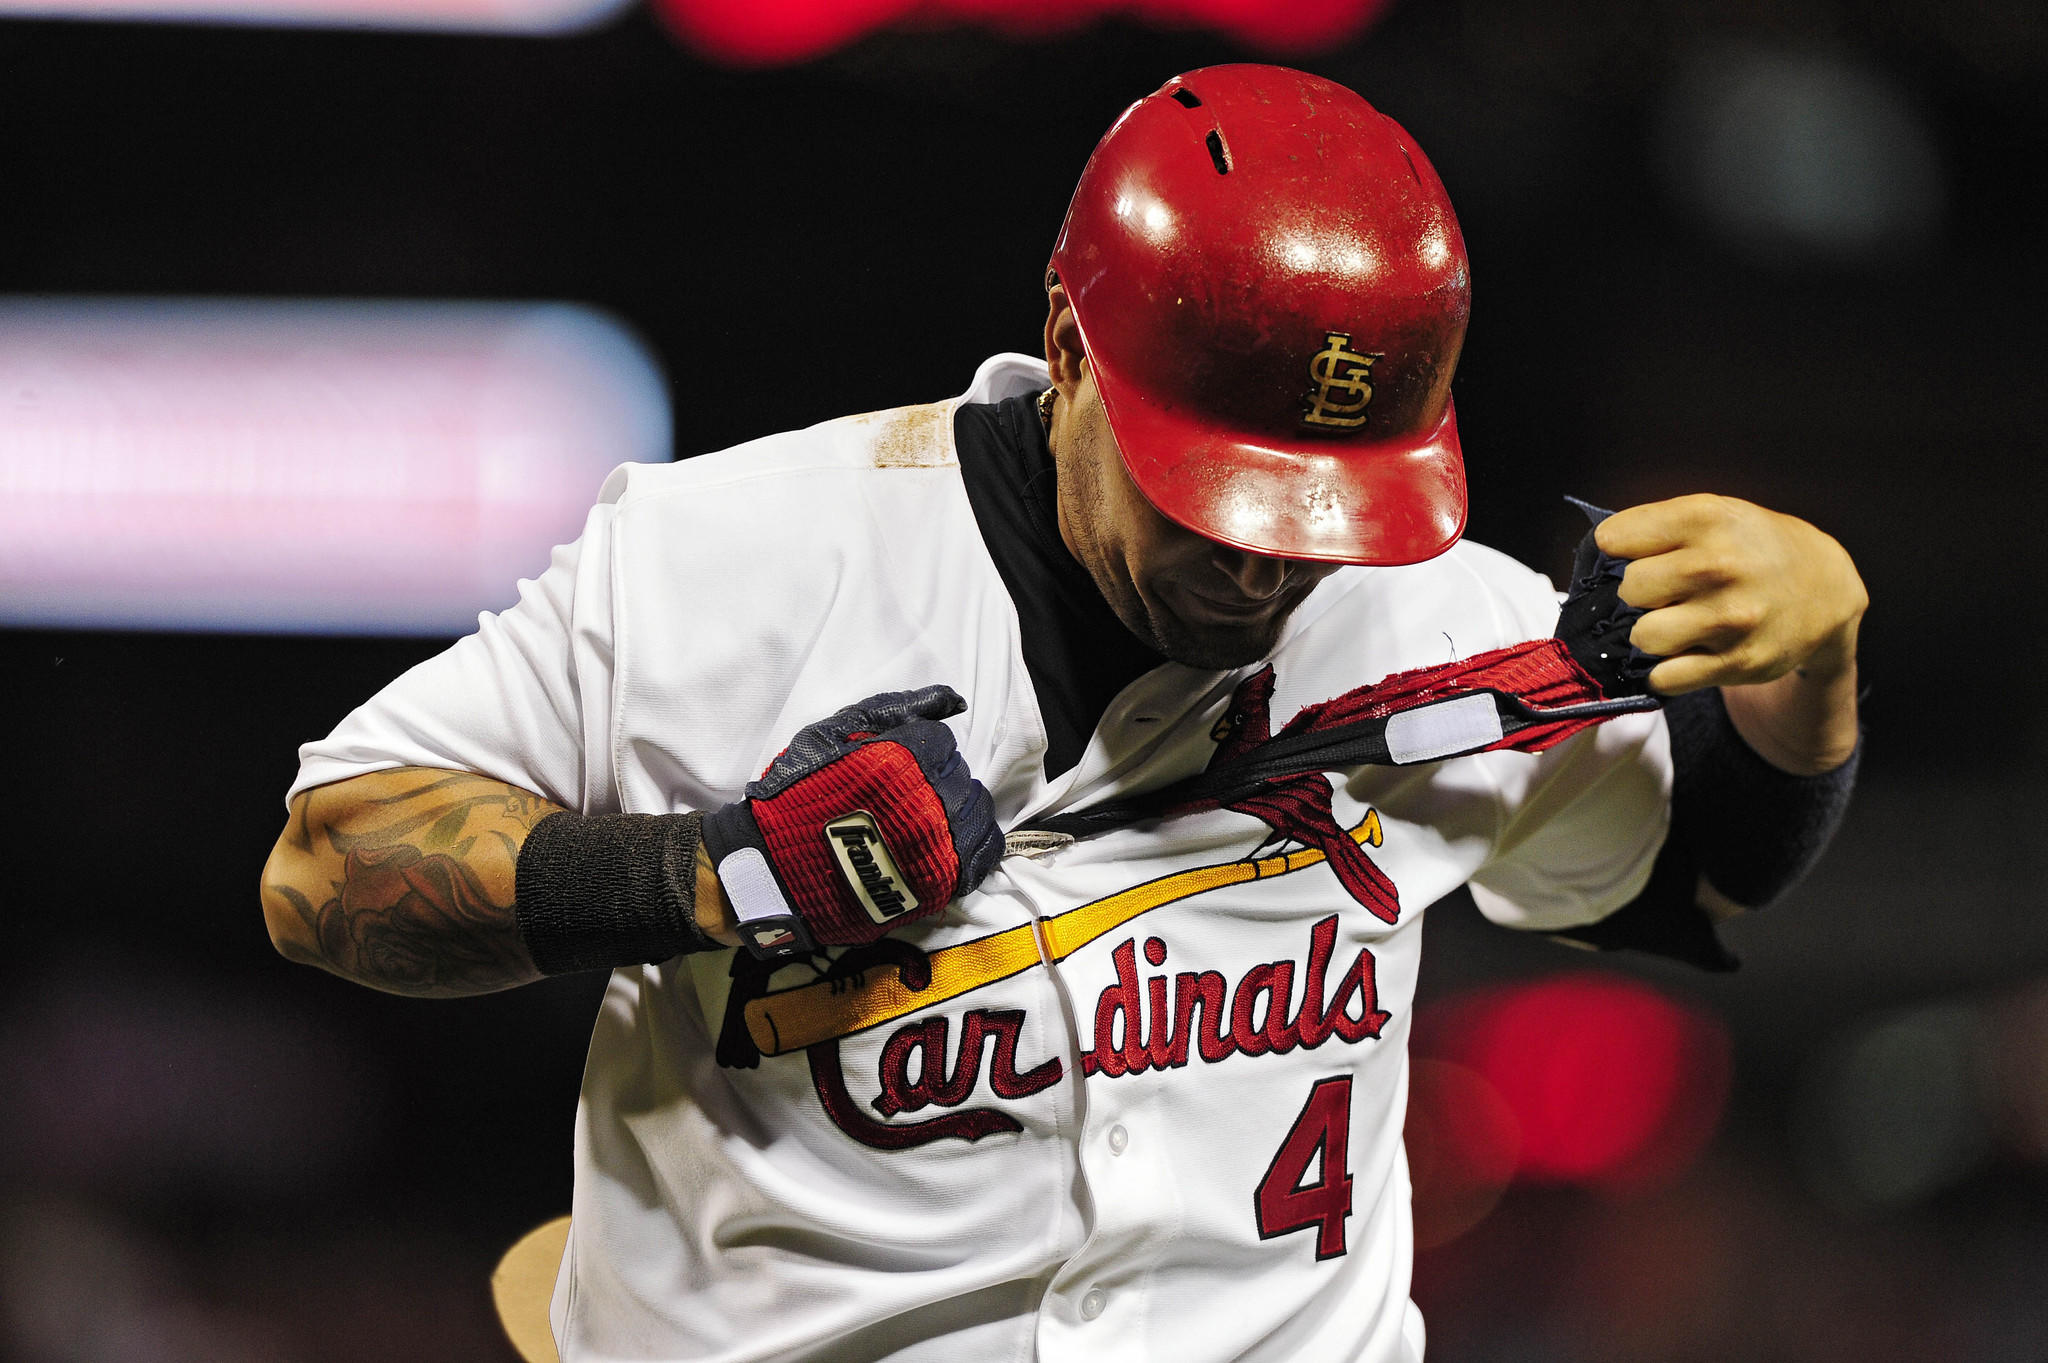 St. Louis Cardinals catcher Yadier Molina tears off his batting gloves after flying out.